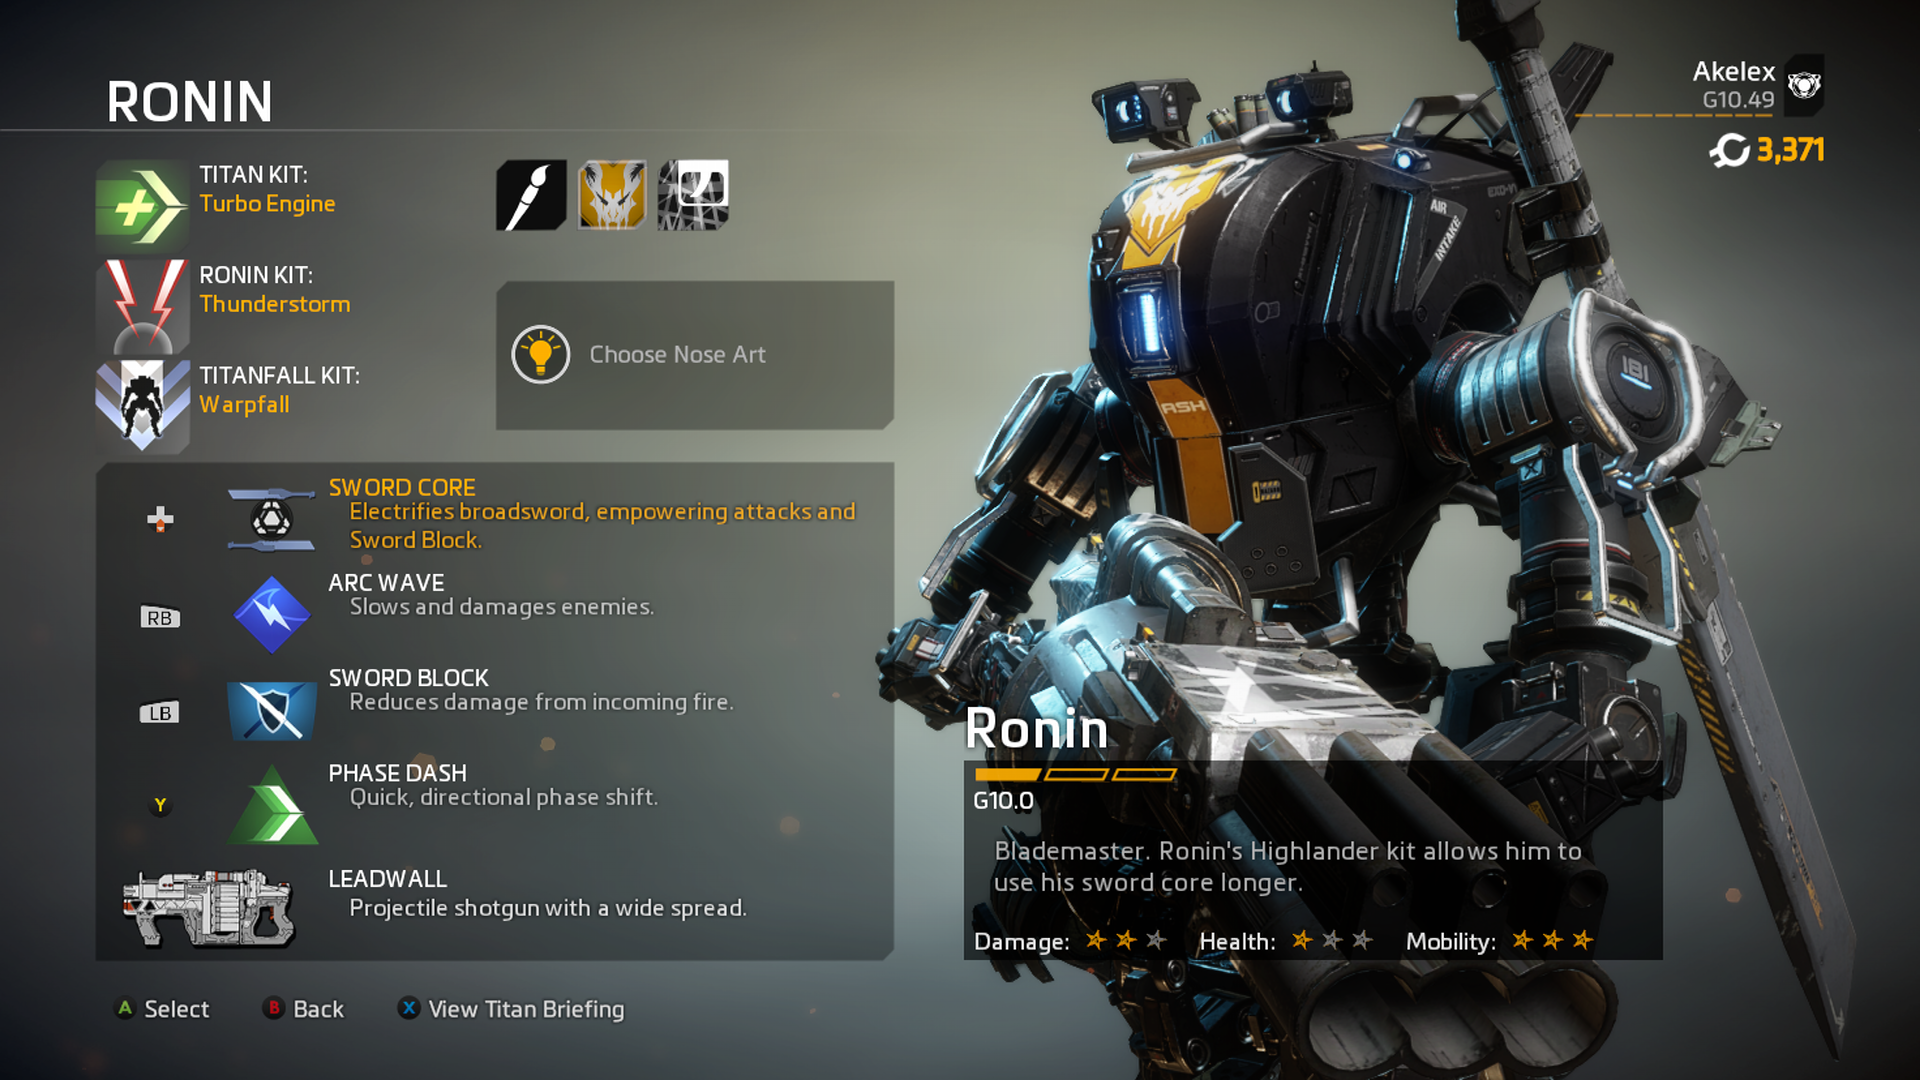 Titanfall 2 Ronin Wallpapers Images - Titanfall 2 Ronin Skins , HD Wallpaper & Backgrounds